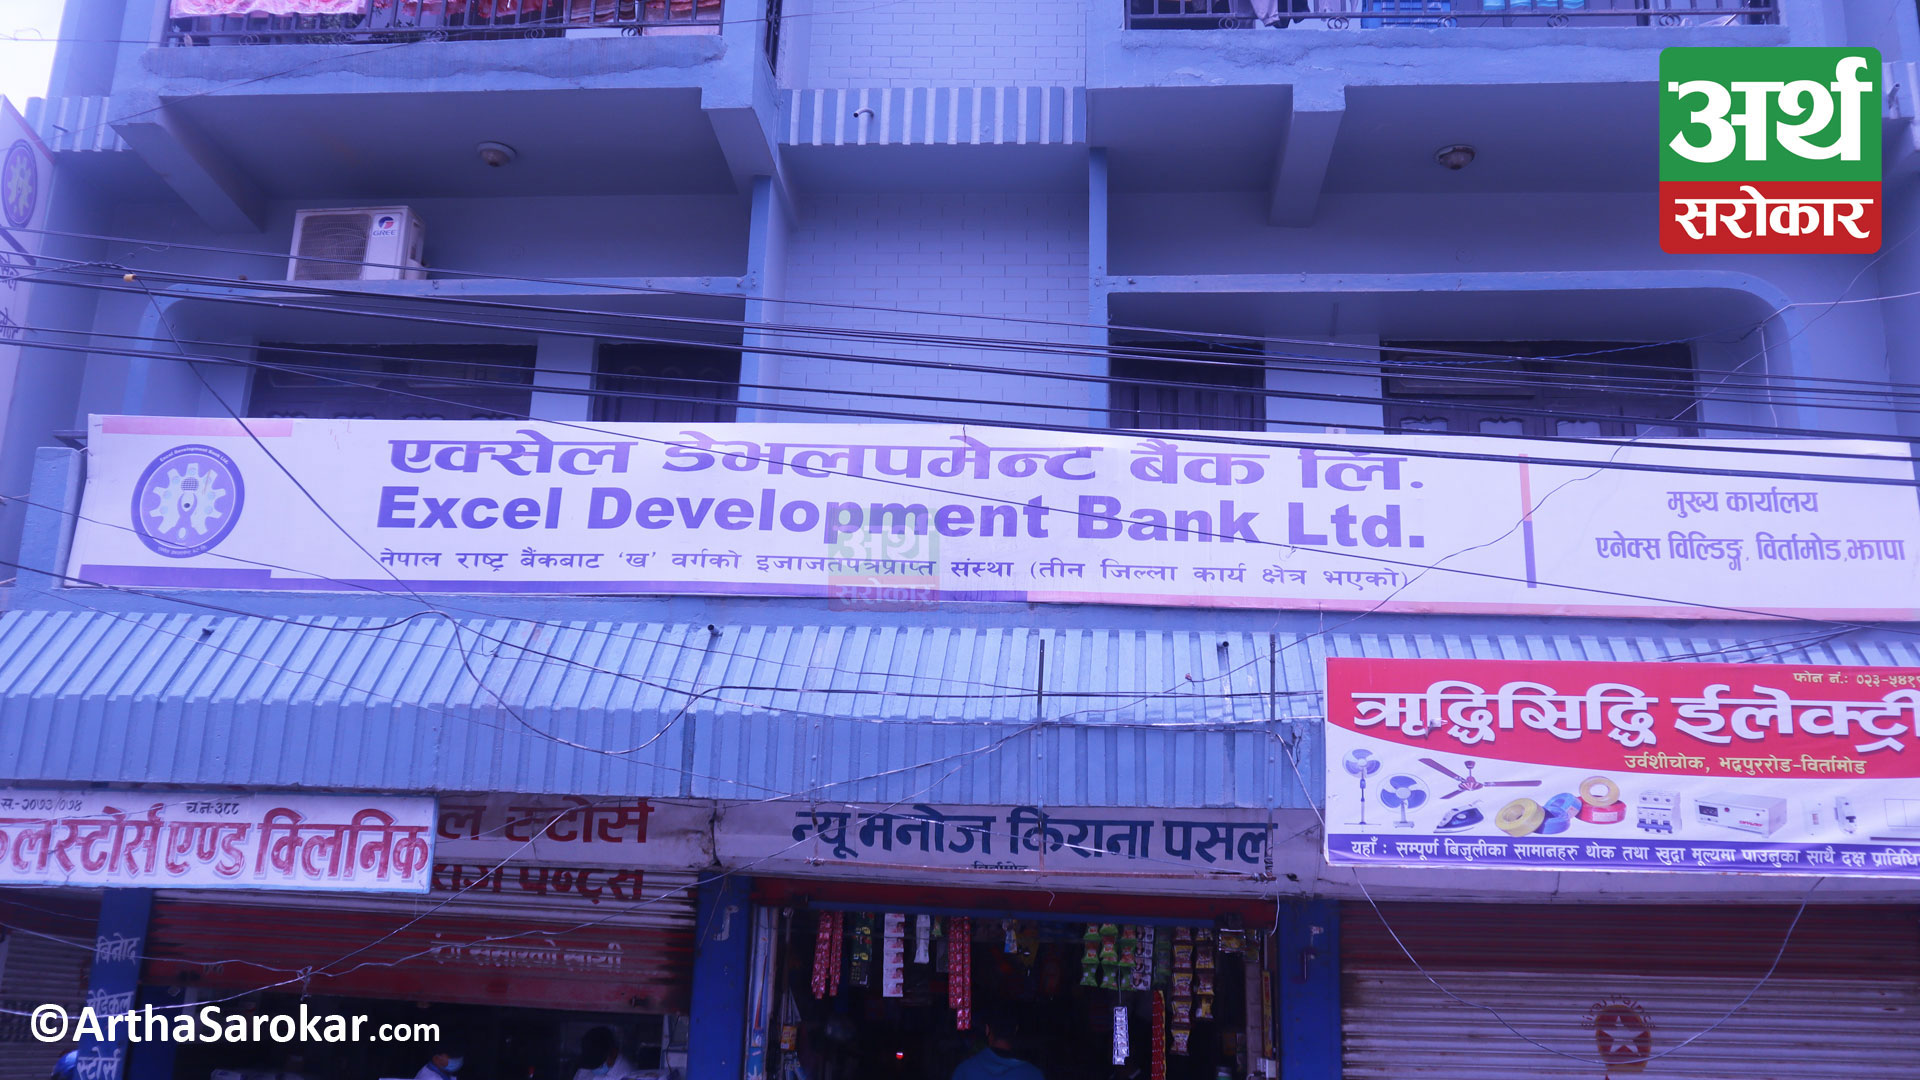 NIBL Ace Capital Limited has been appointed as the issue manager for the Excel Development Bank